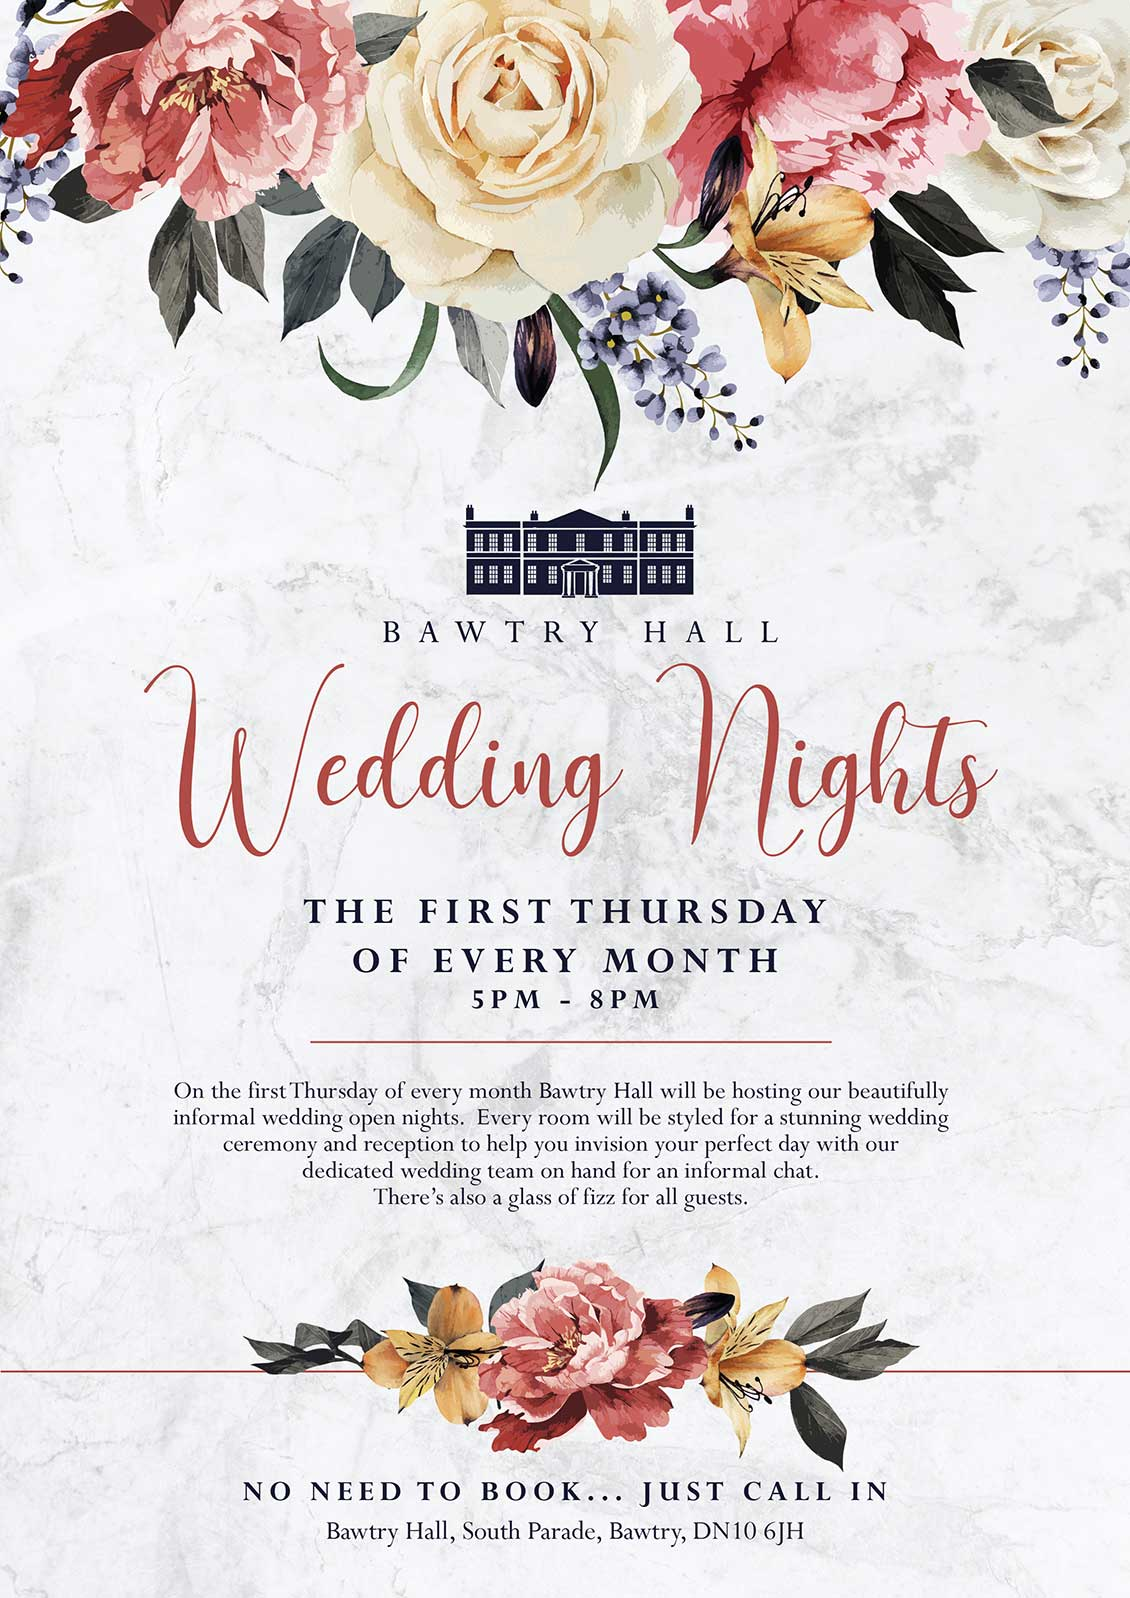 Bawtry Hall Wedding Open Nights